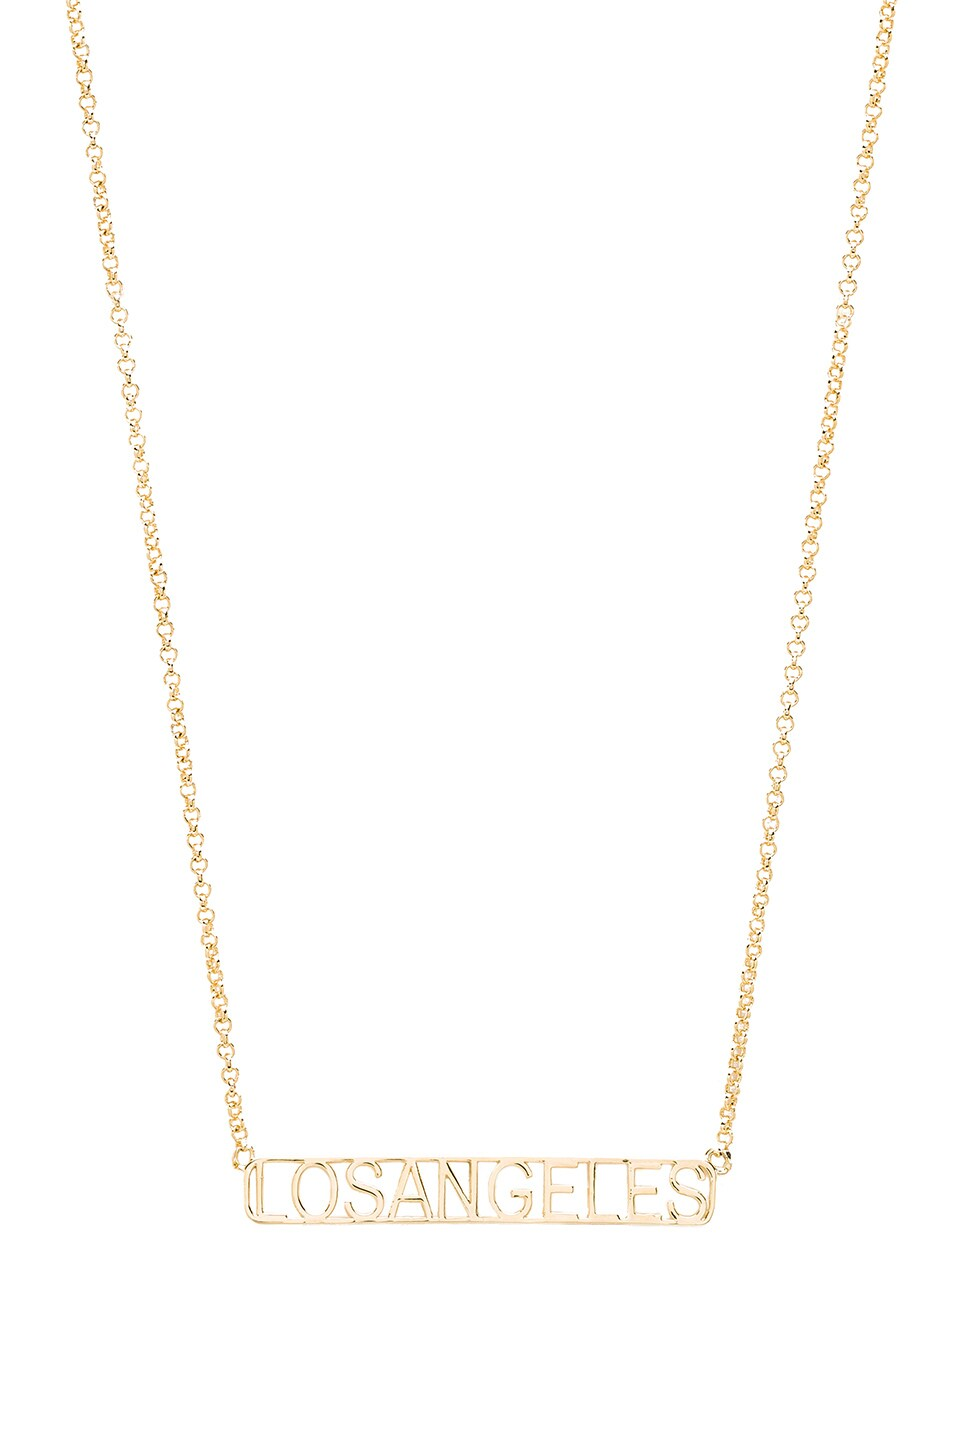 Tawnie & Brina Los Angeles Frame Necklace in Gold